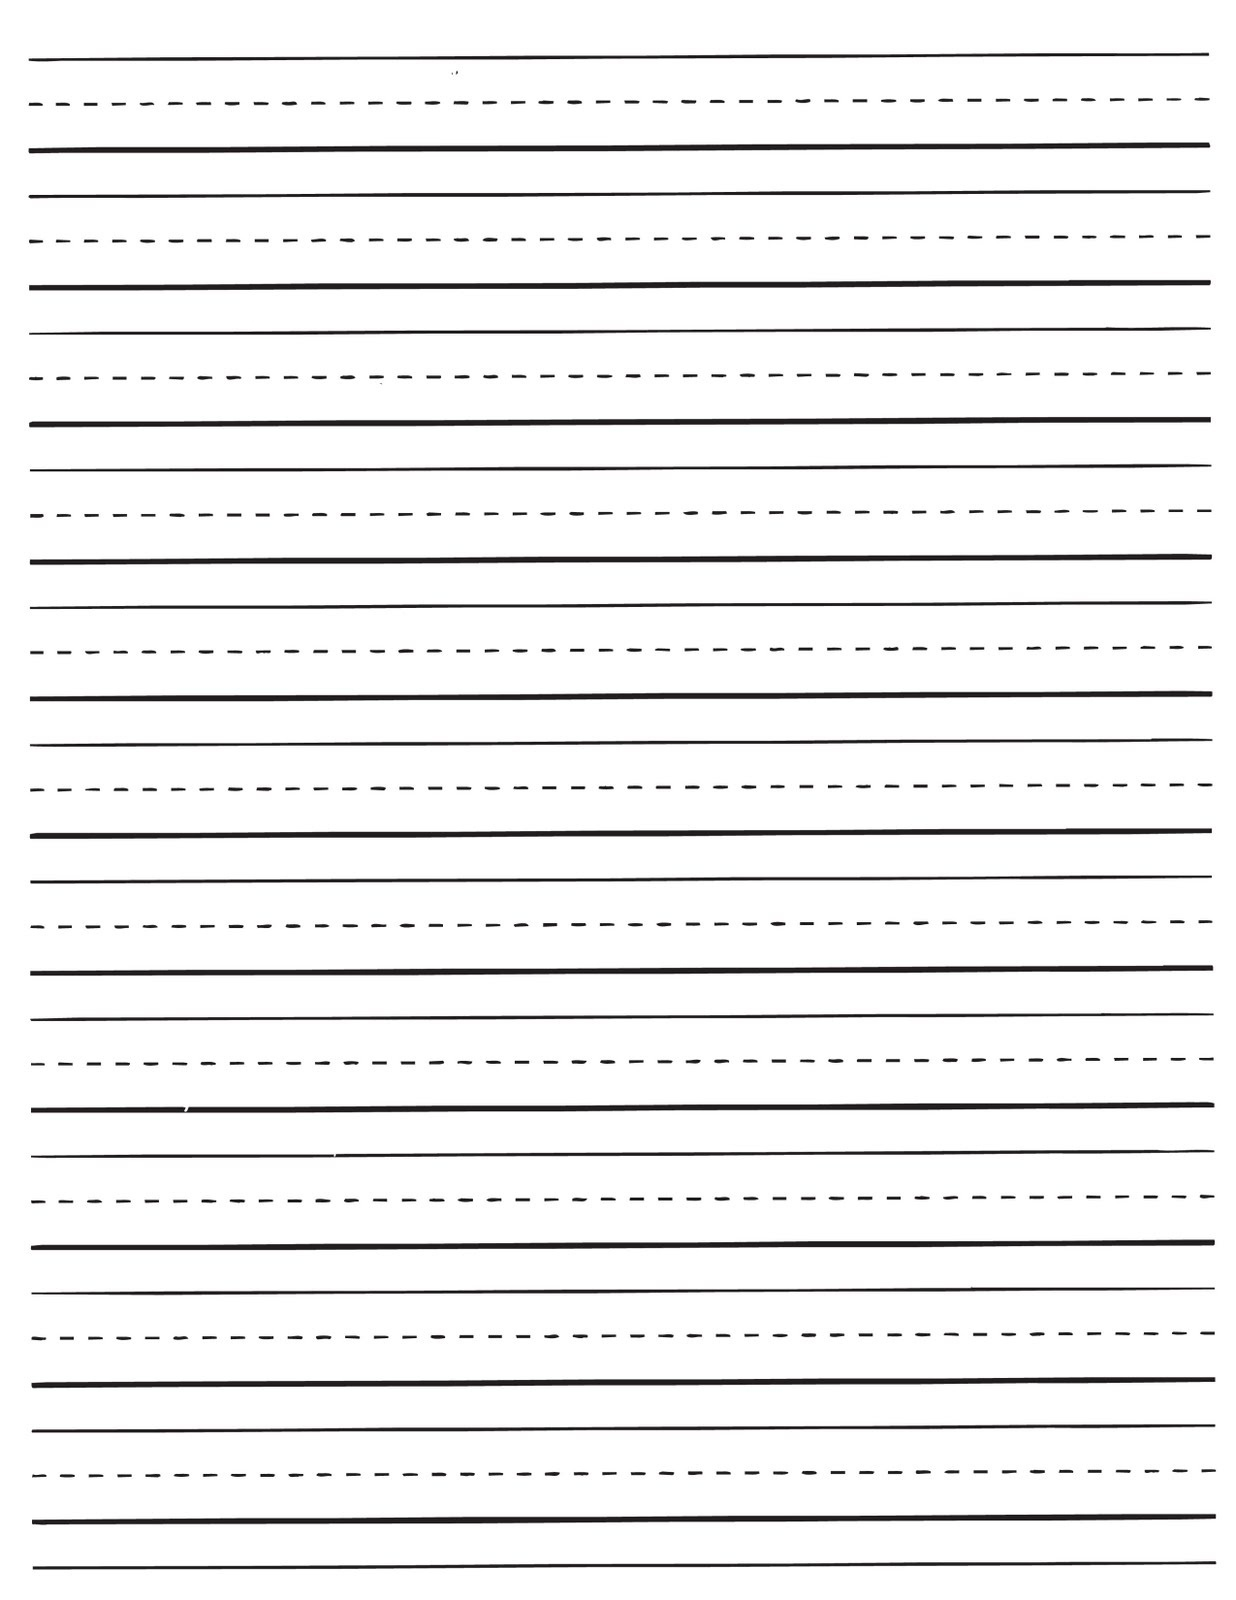 Free Printable Lined Paper For Kindergarten - Kaza.psstech.co - Free Printable Kindergarten Lined Paper Template